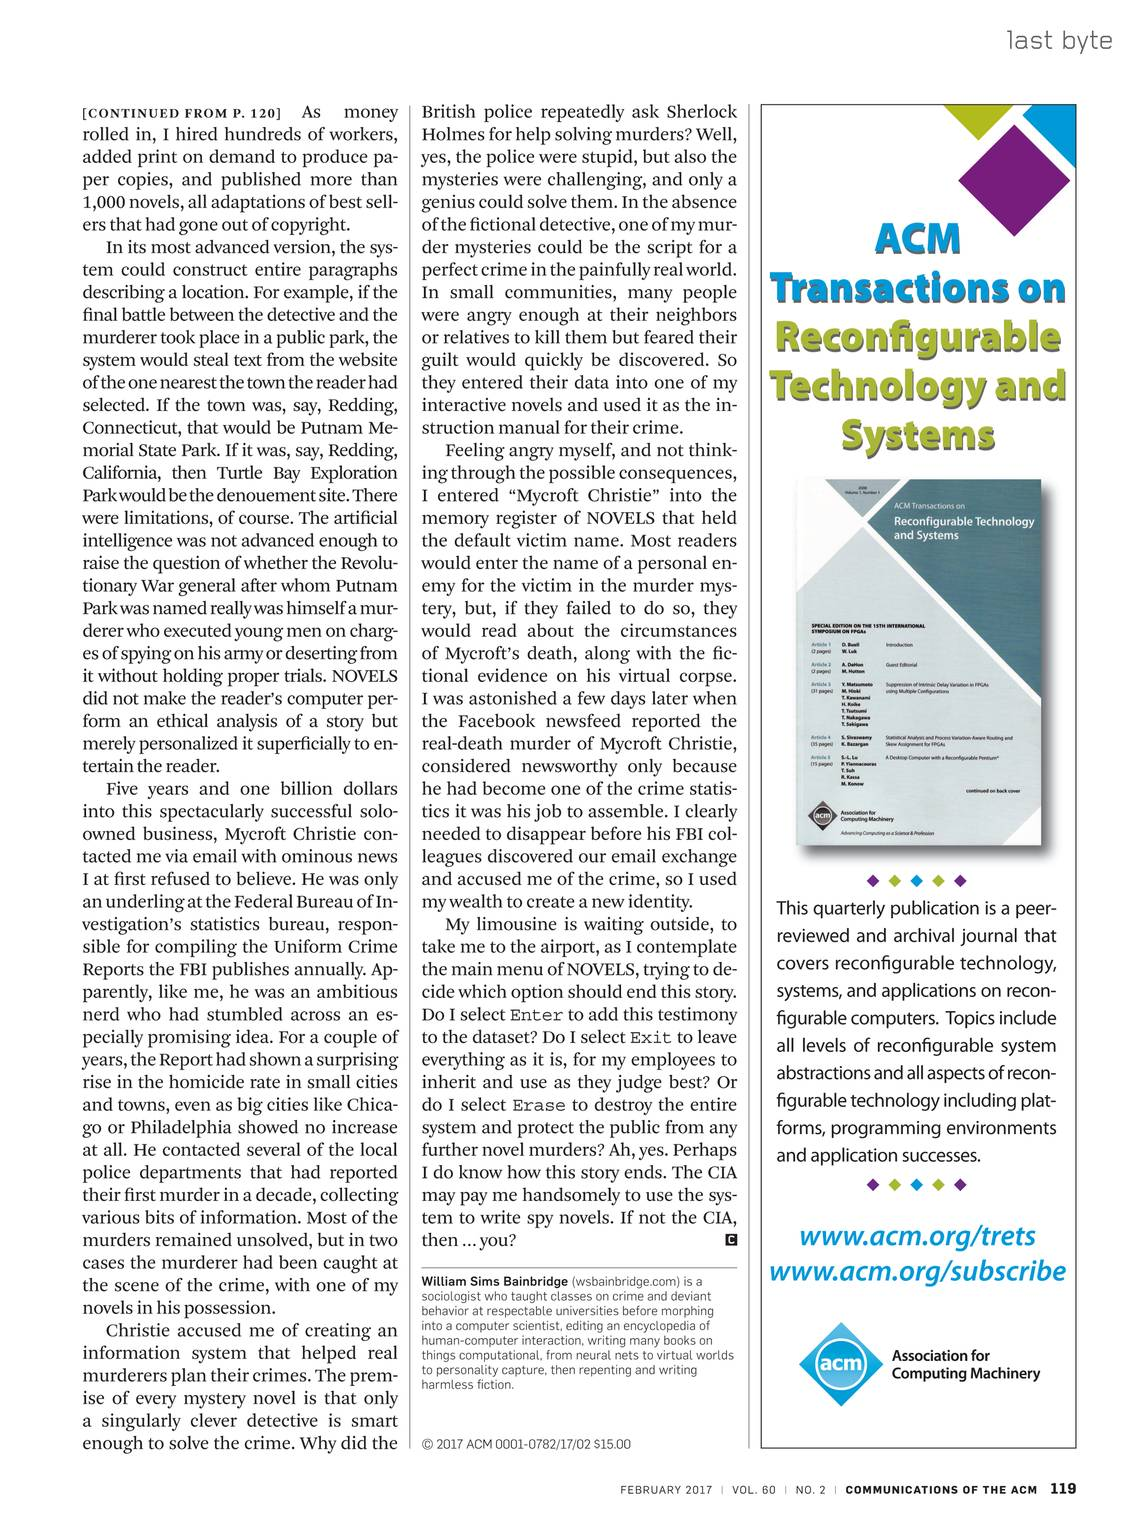 Communications of the ACM - February 2017 - page 119